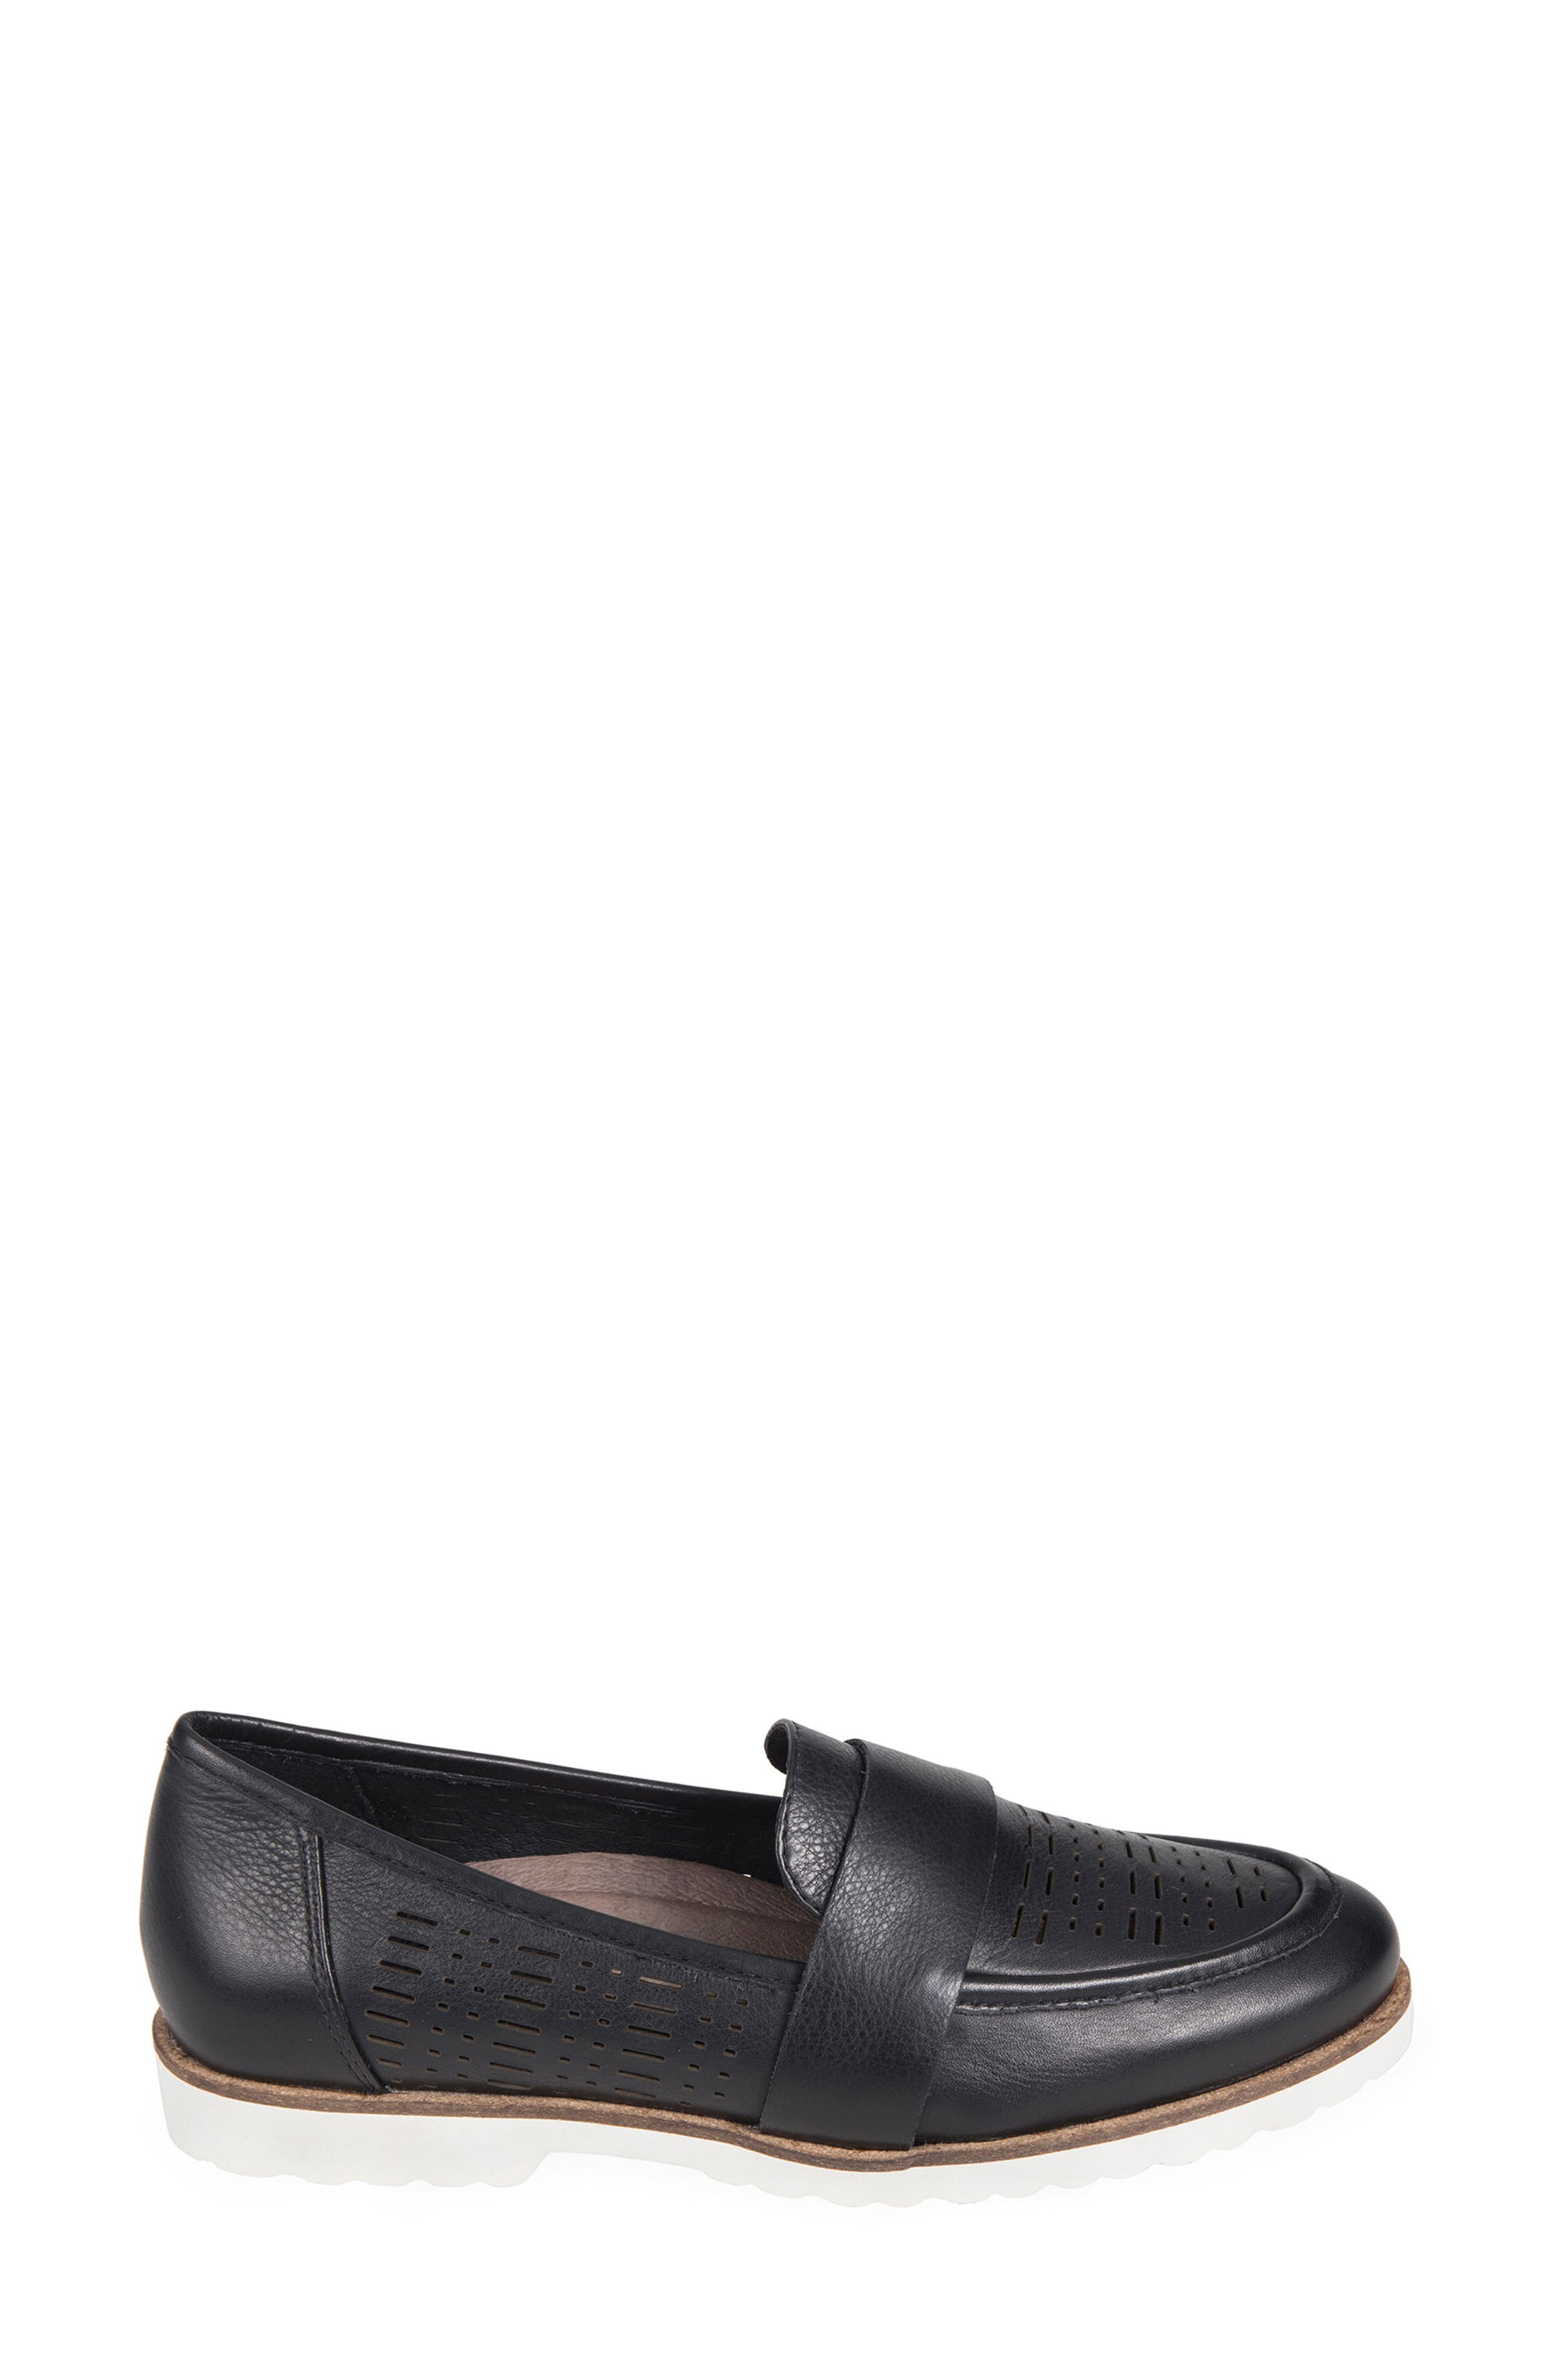 Masio Loafer,                             Alternate thumbnail 3, color,                             001